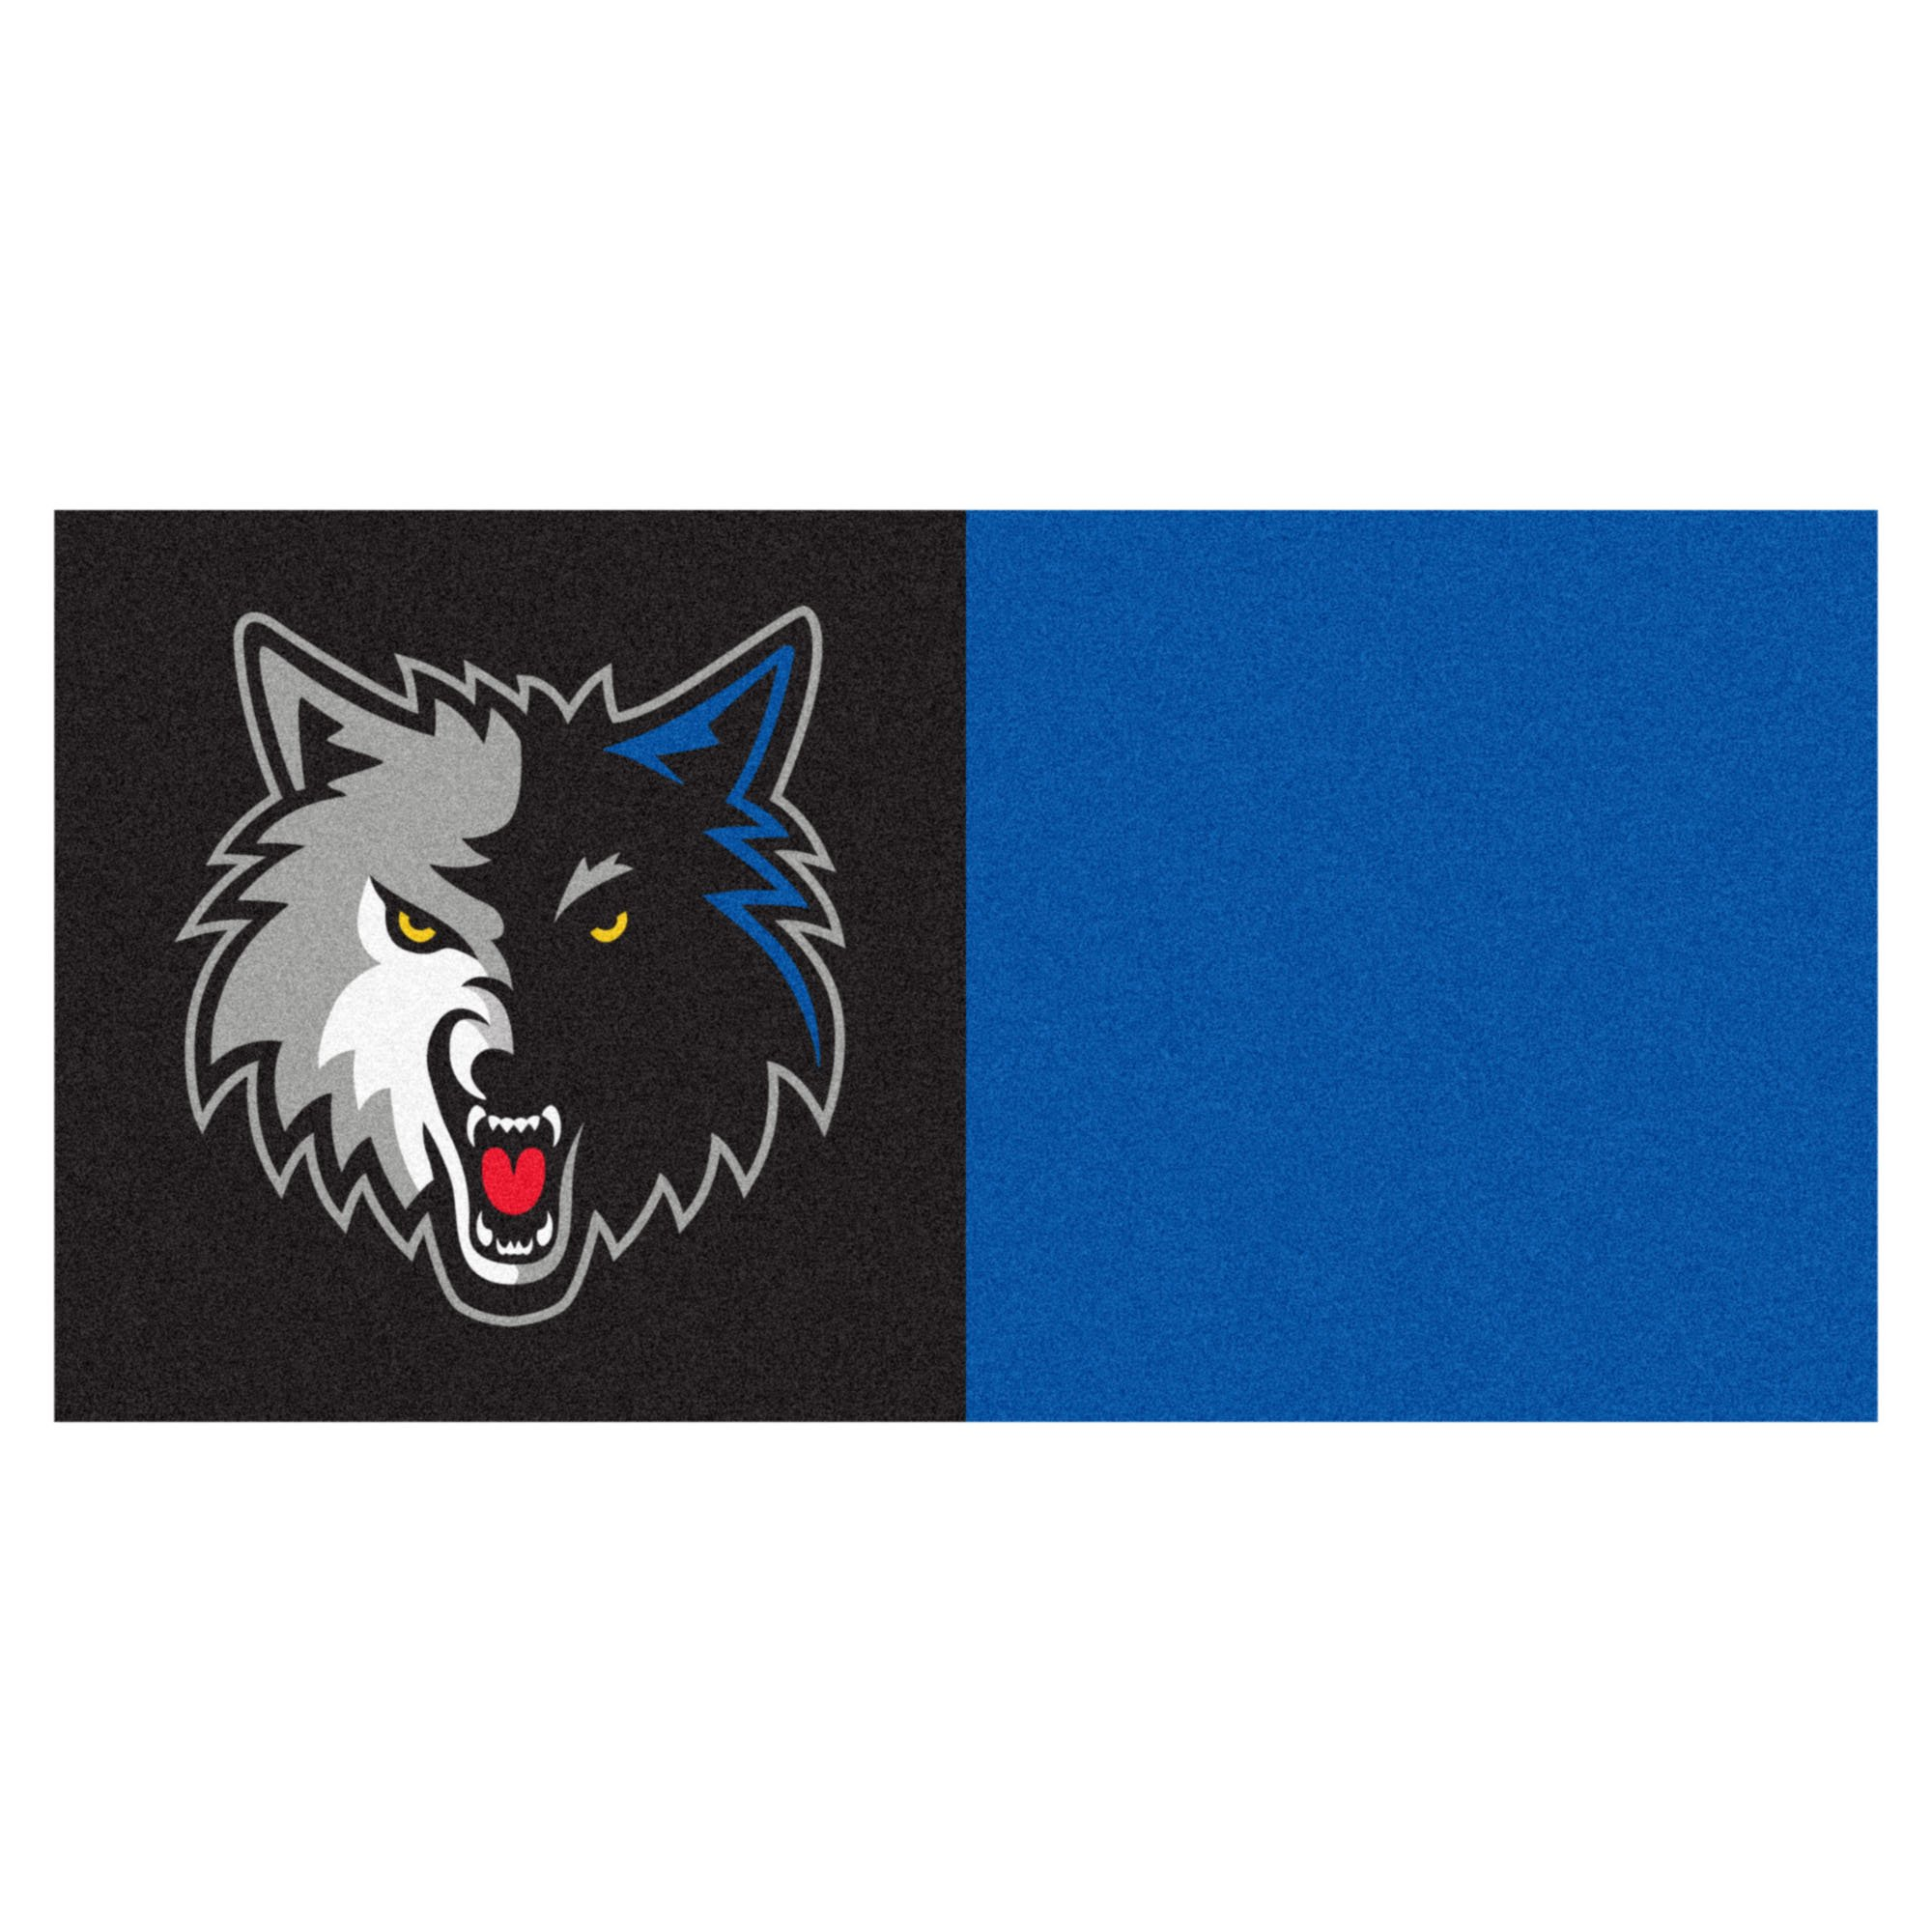 FANMATS NBA Minnesota Timberwolves Nylon Face Team Carpet Tiles